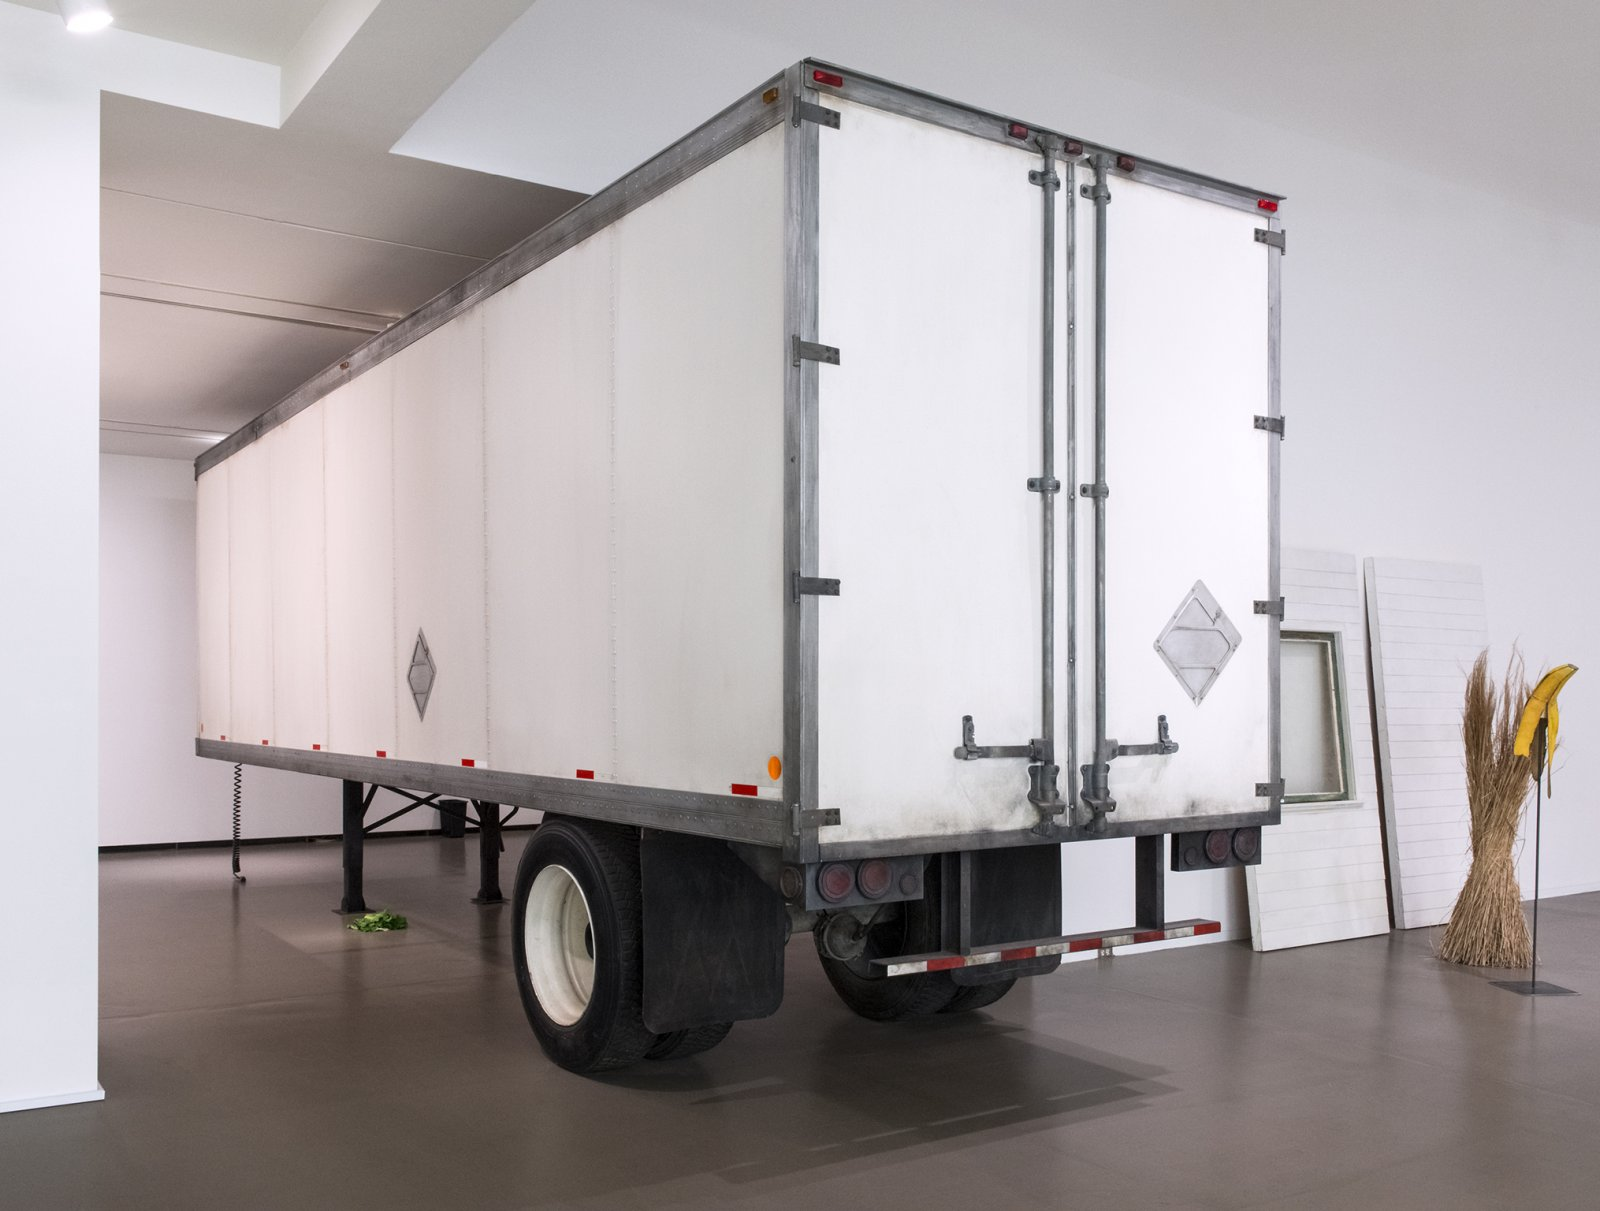 Geoffrey Farmer,Trailer, 2002, steel, fiberboard, mixed media, 134 x 87 x 354 in. (340 x 220 x 900 cm). Installation view, How Do I Fit This Ghost inMy Mouth?, Vancouver Art Gallery, 2015